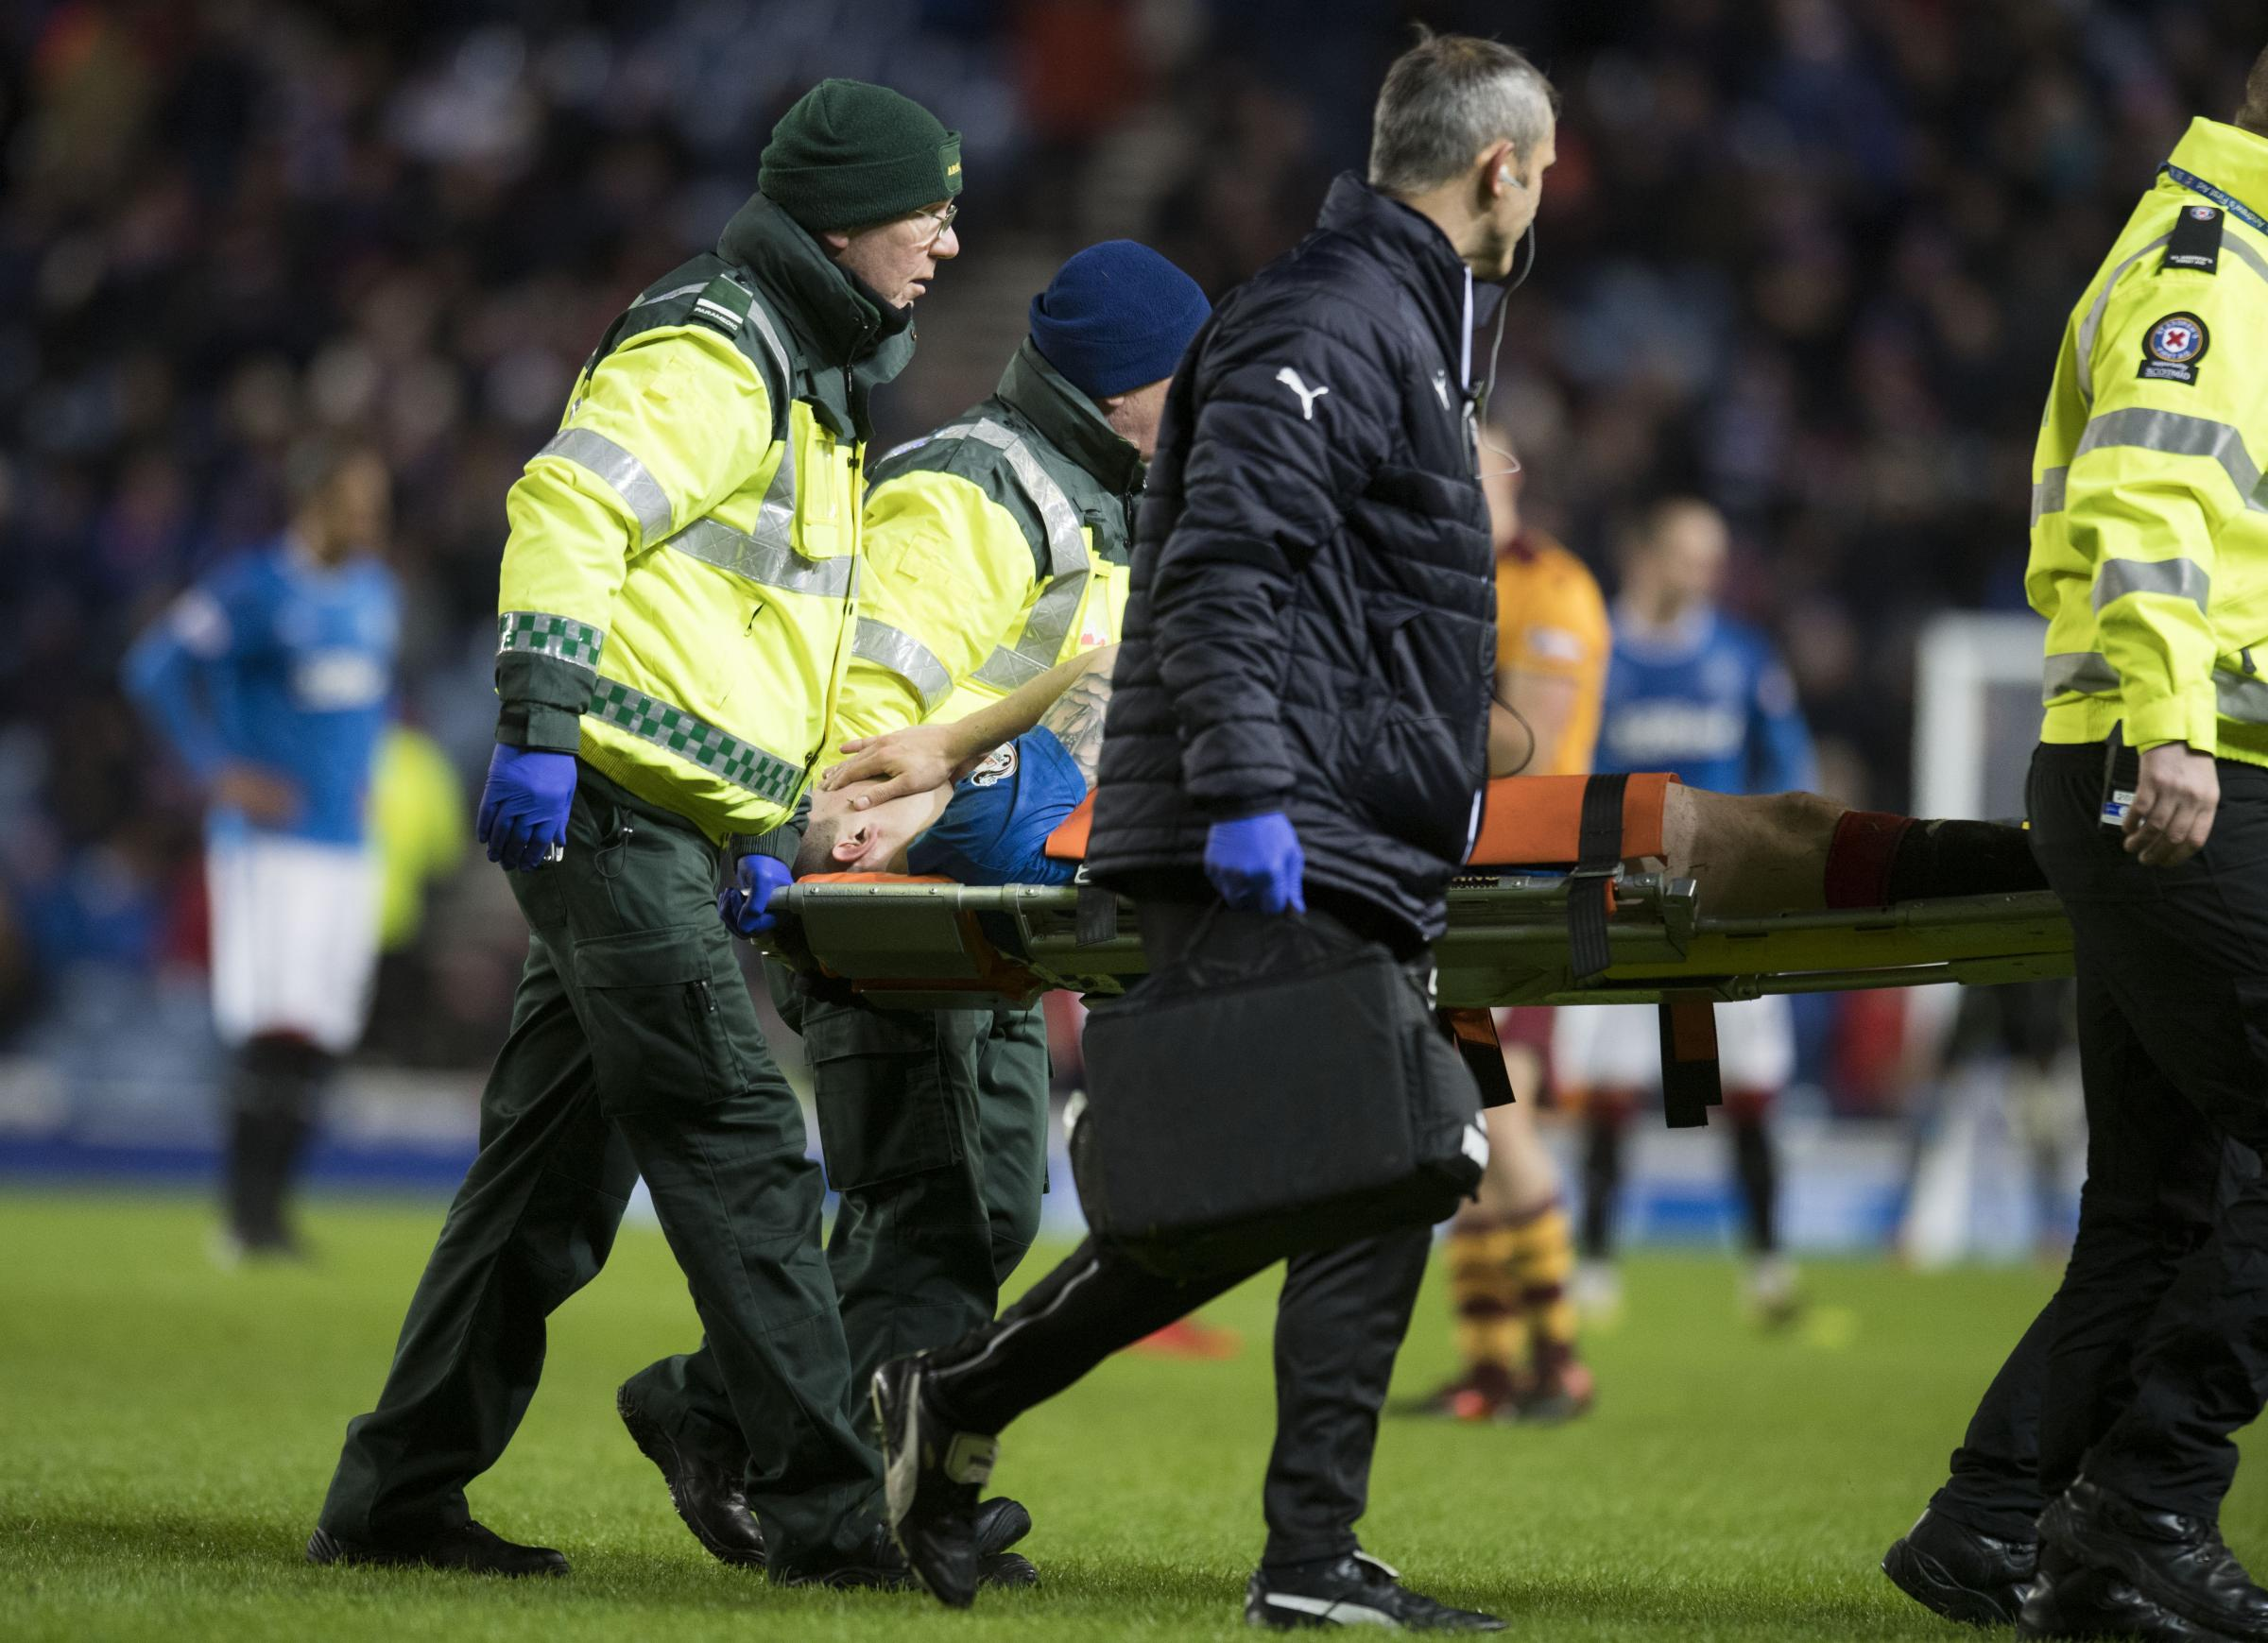 Ryan Jack is stretchered off